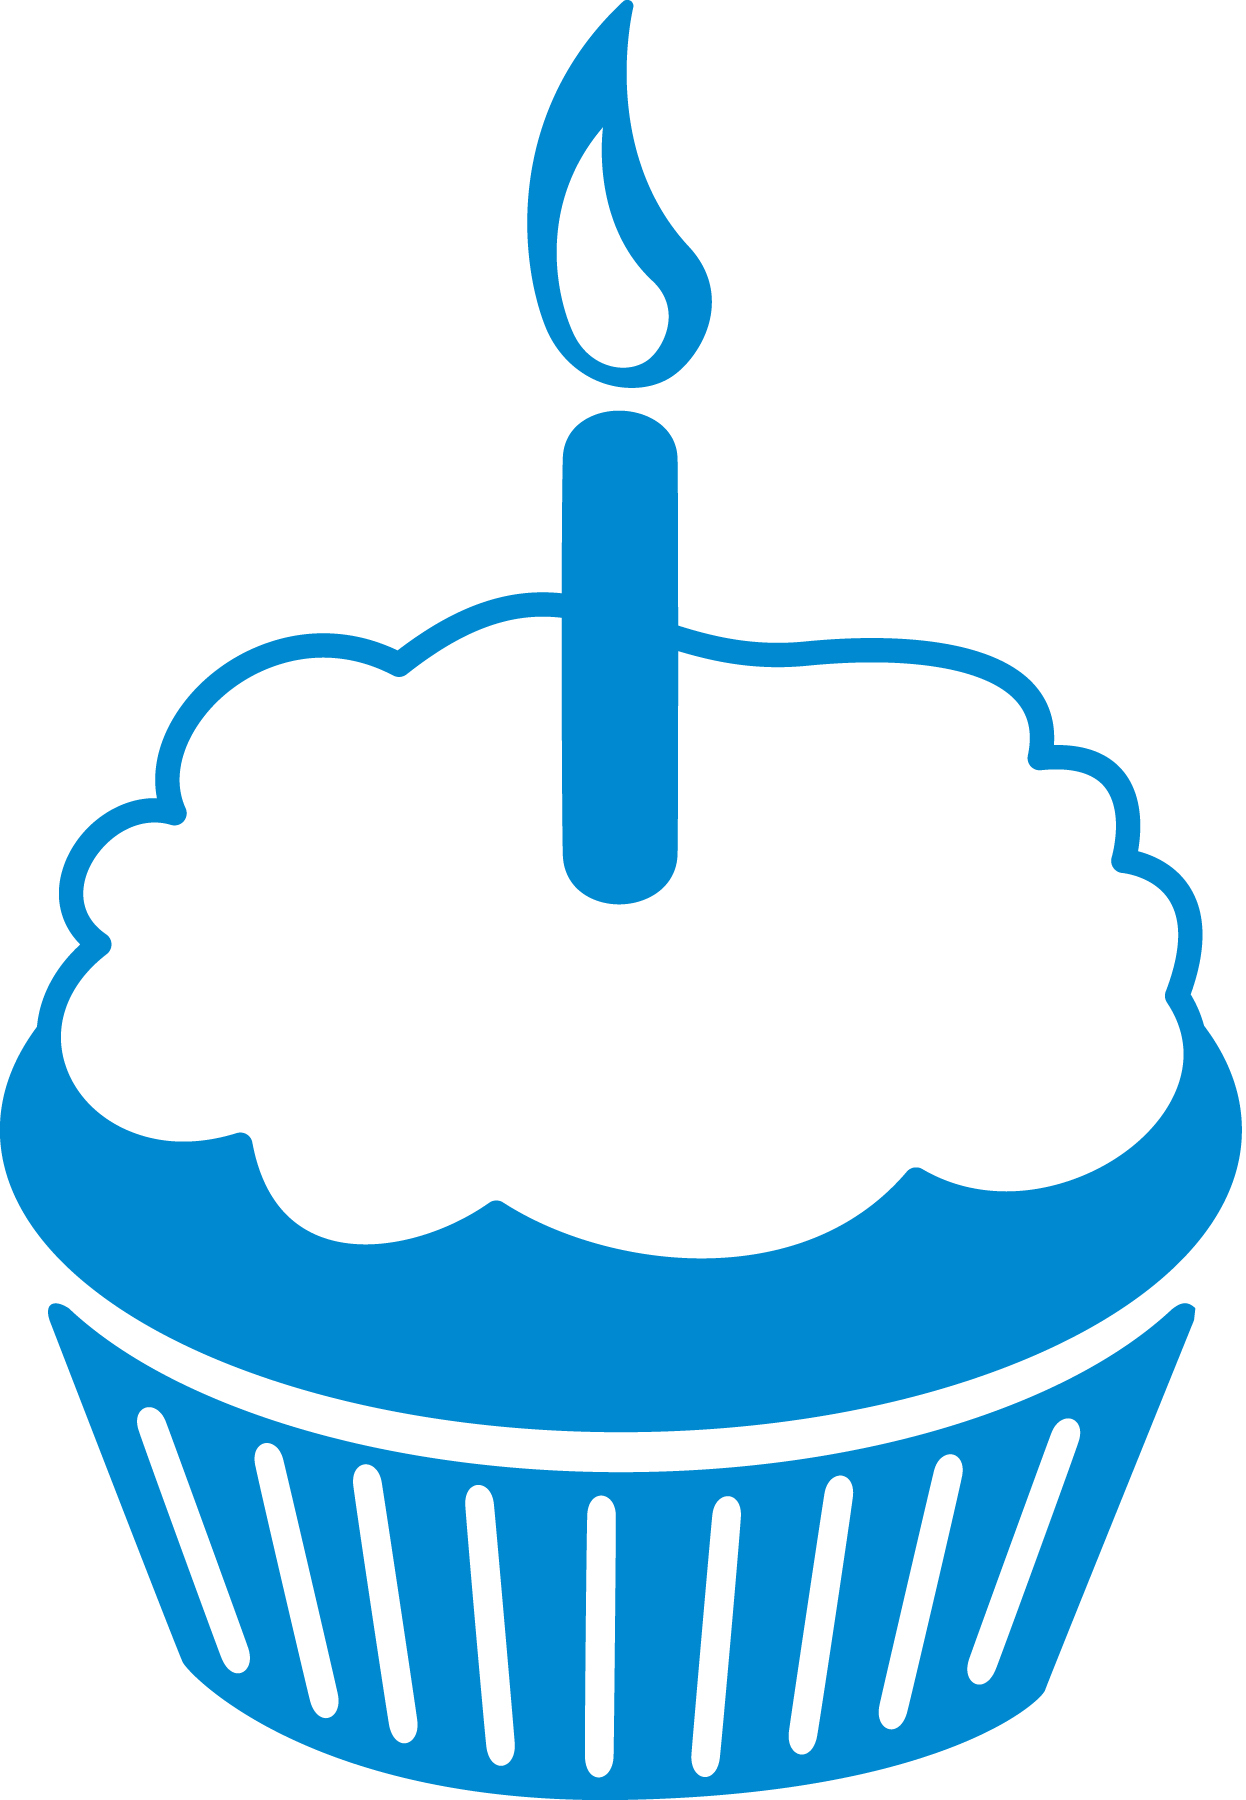 Blue Birthday Cake Clipart | Free download on ClipArtMag